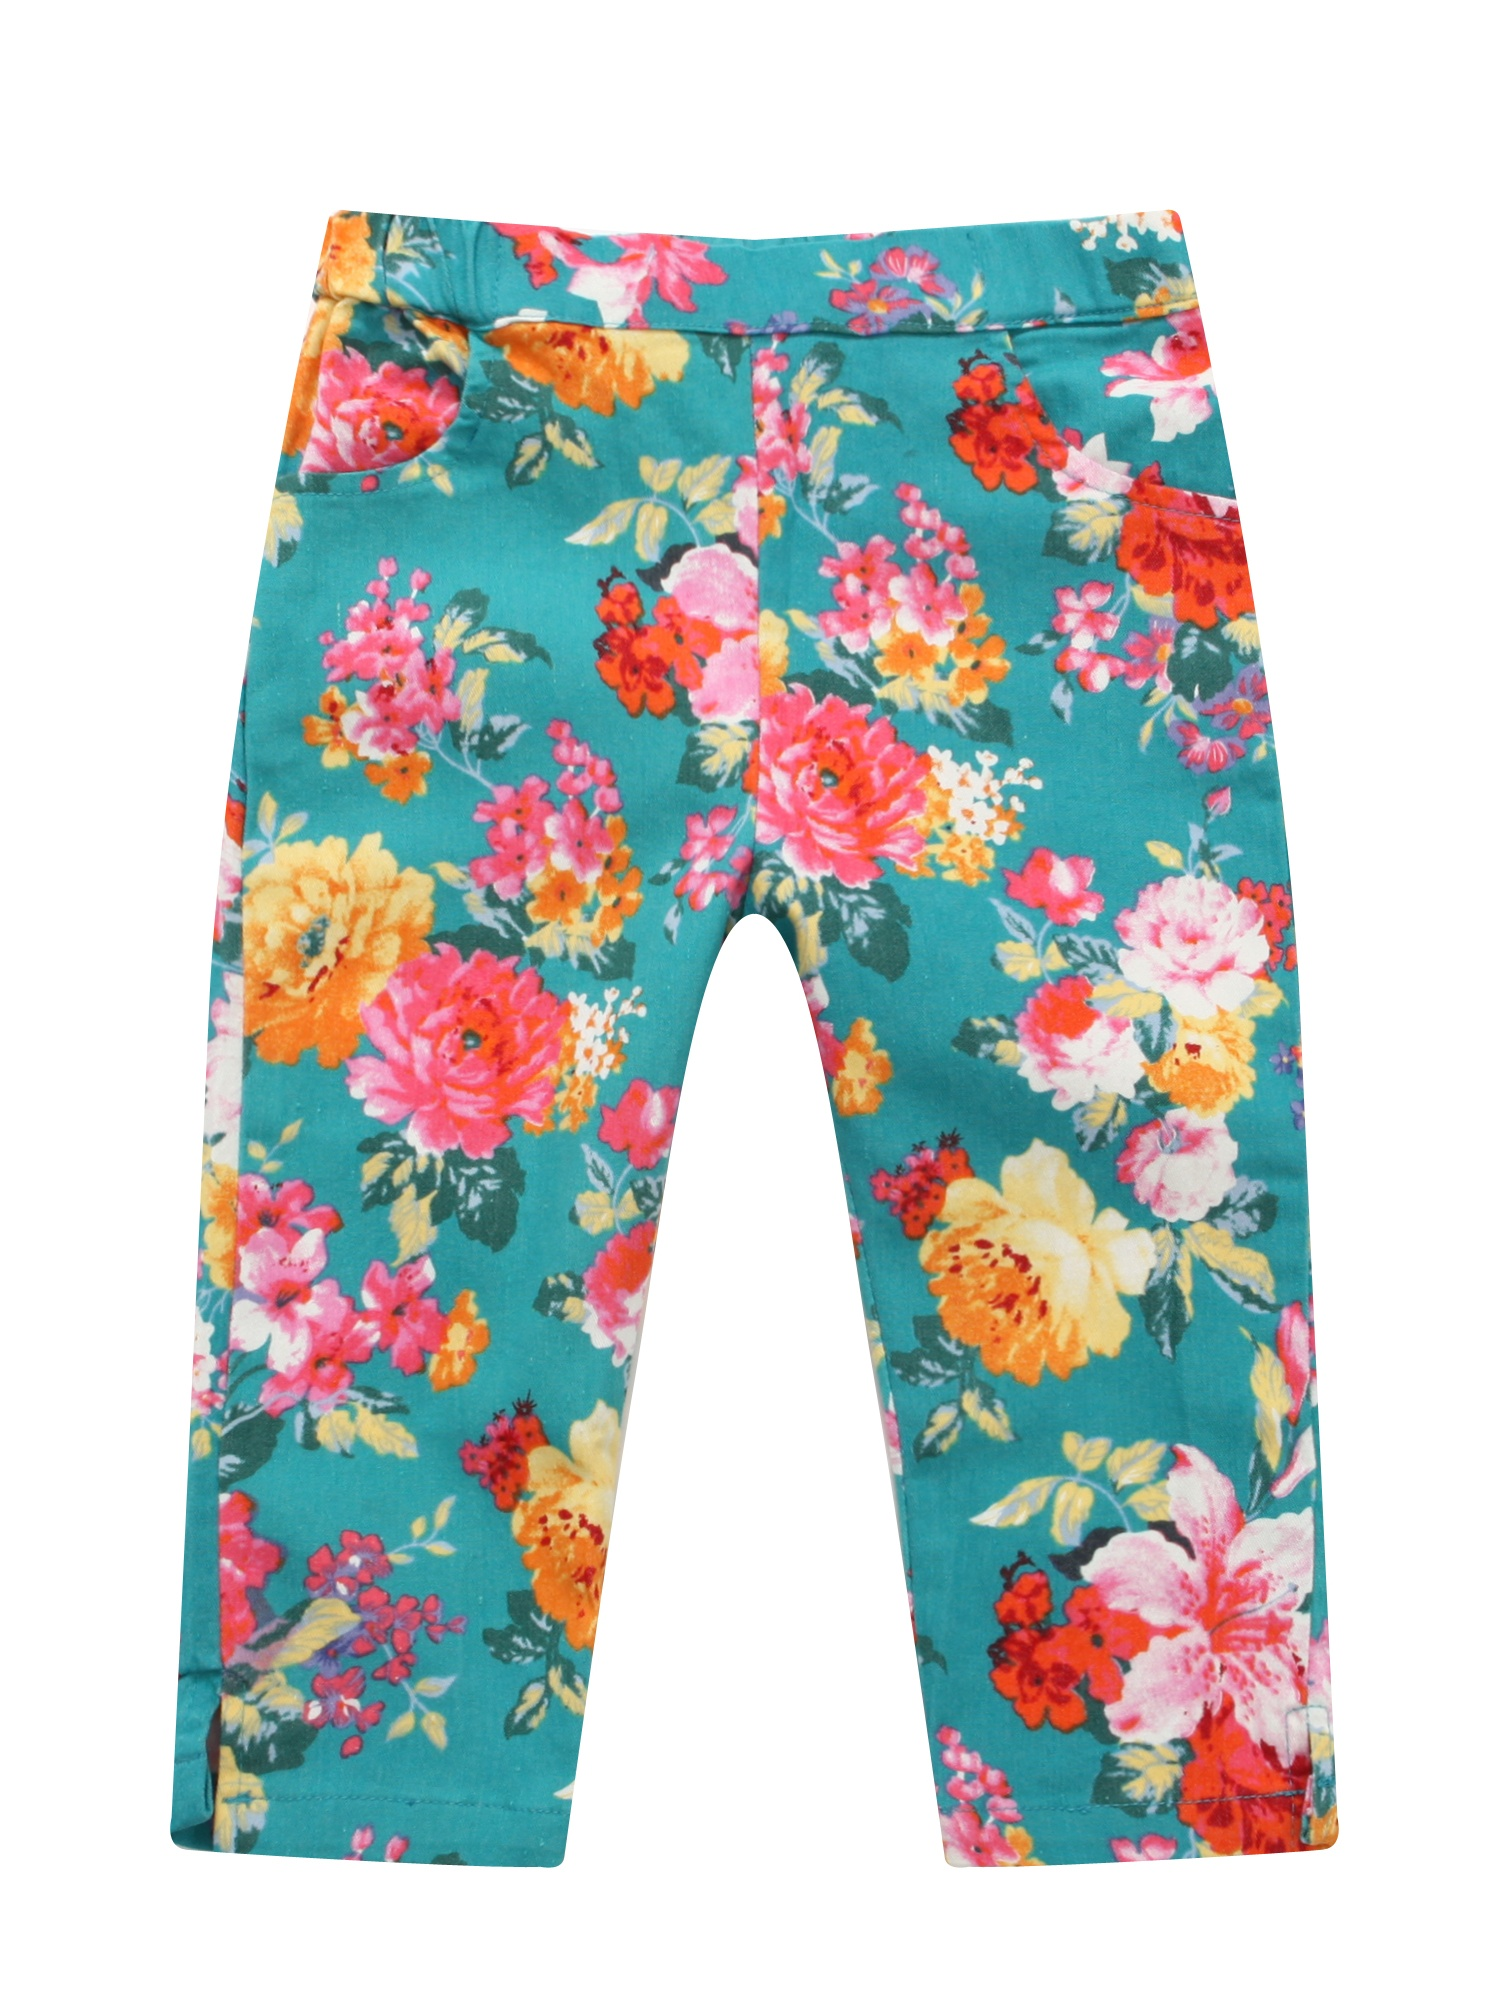 Richie House Girls' Teal Floral Print Jeans RH0642